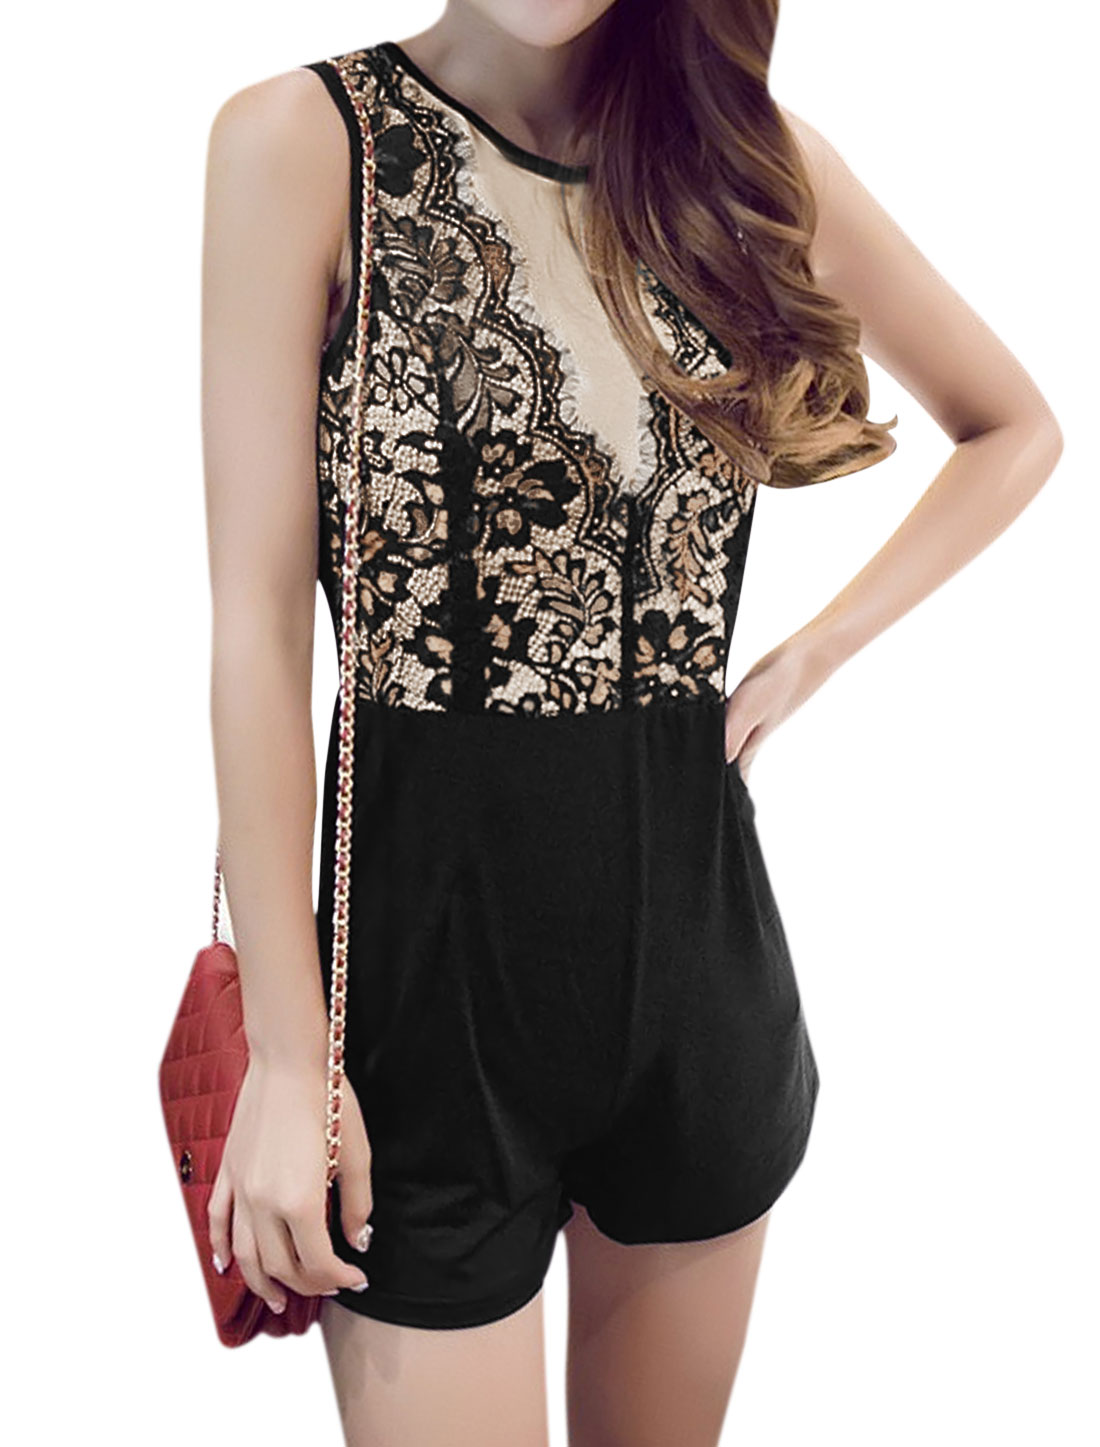 Woman Floral Design Lace Panel Cut Out Back Sleeveless Romper Black Beige S